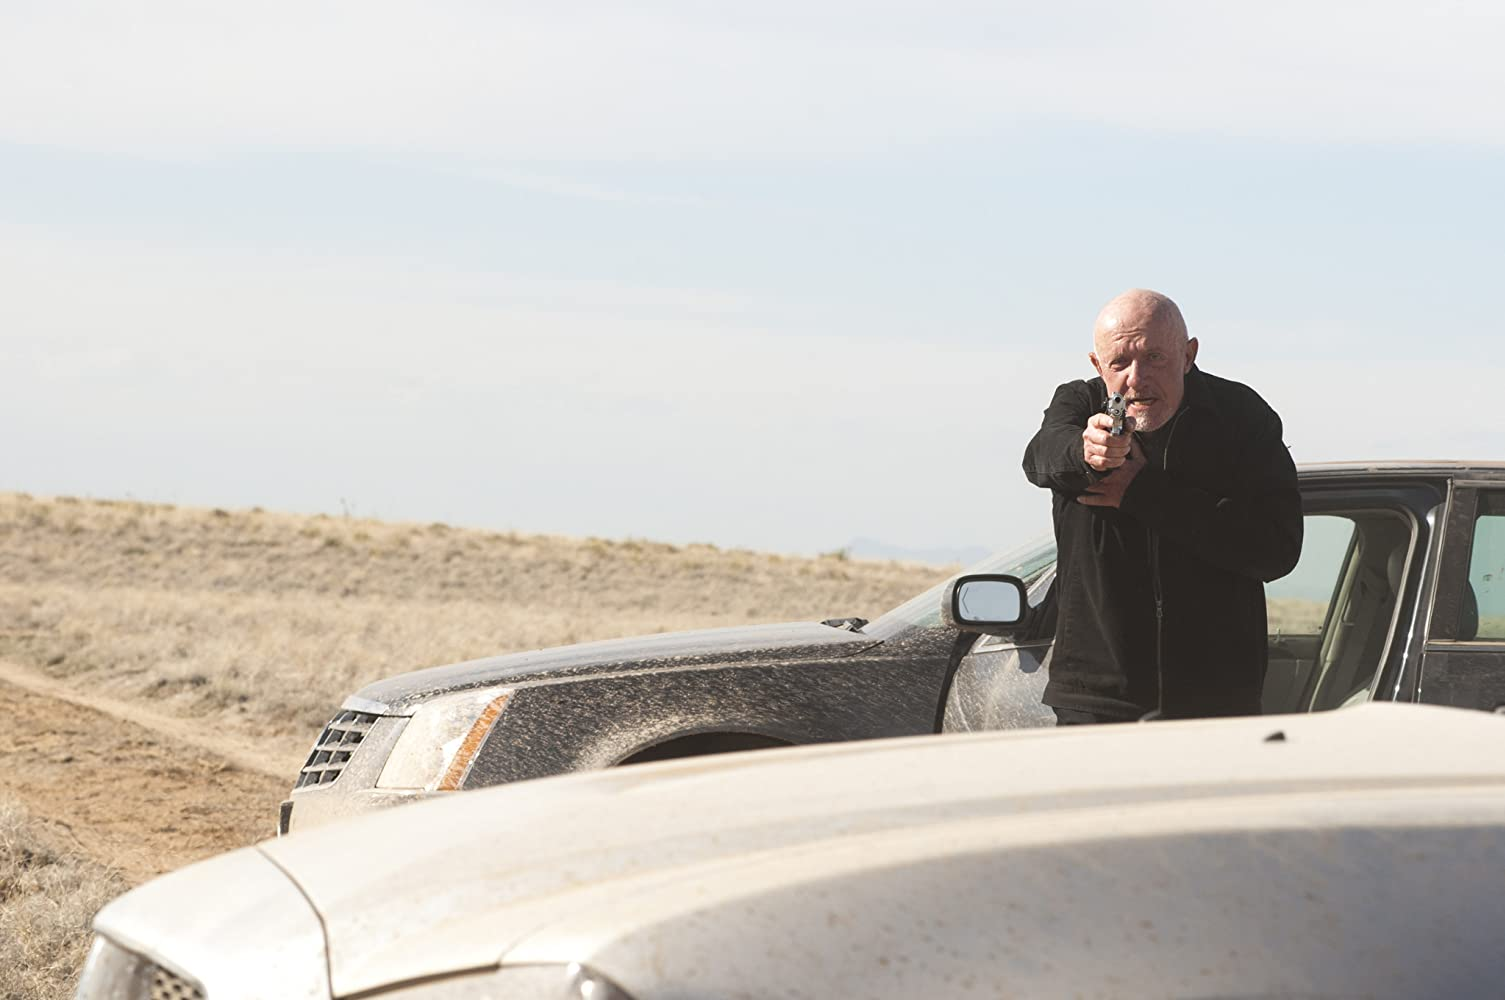 Jonathan Banks in Breaking Bad (2008)